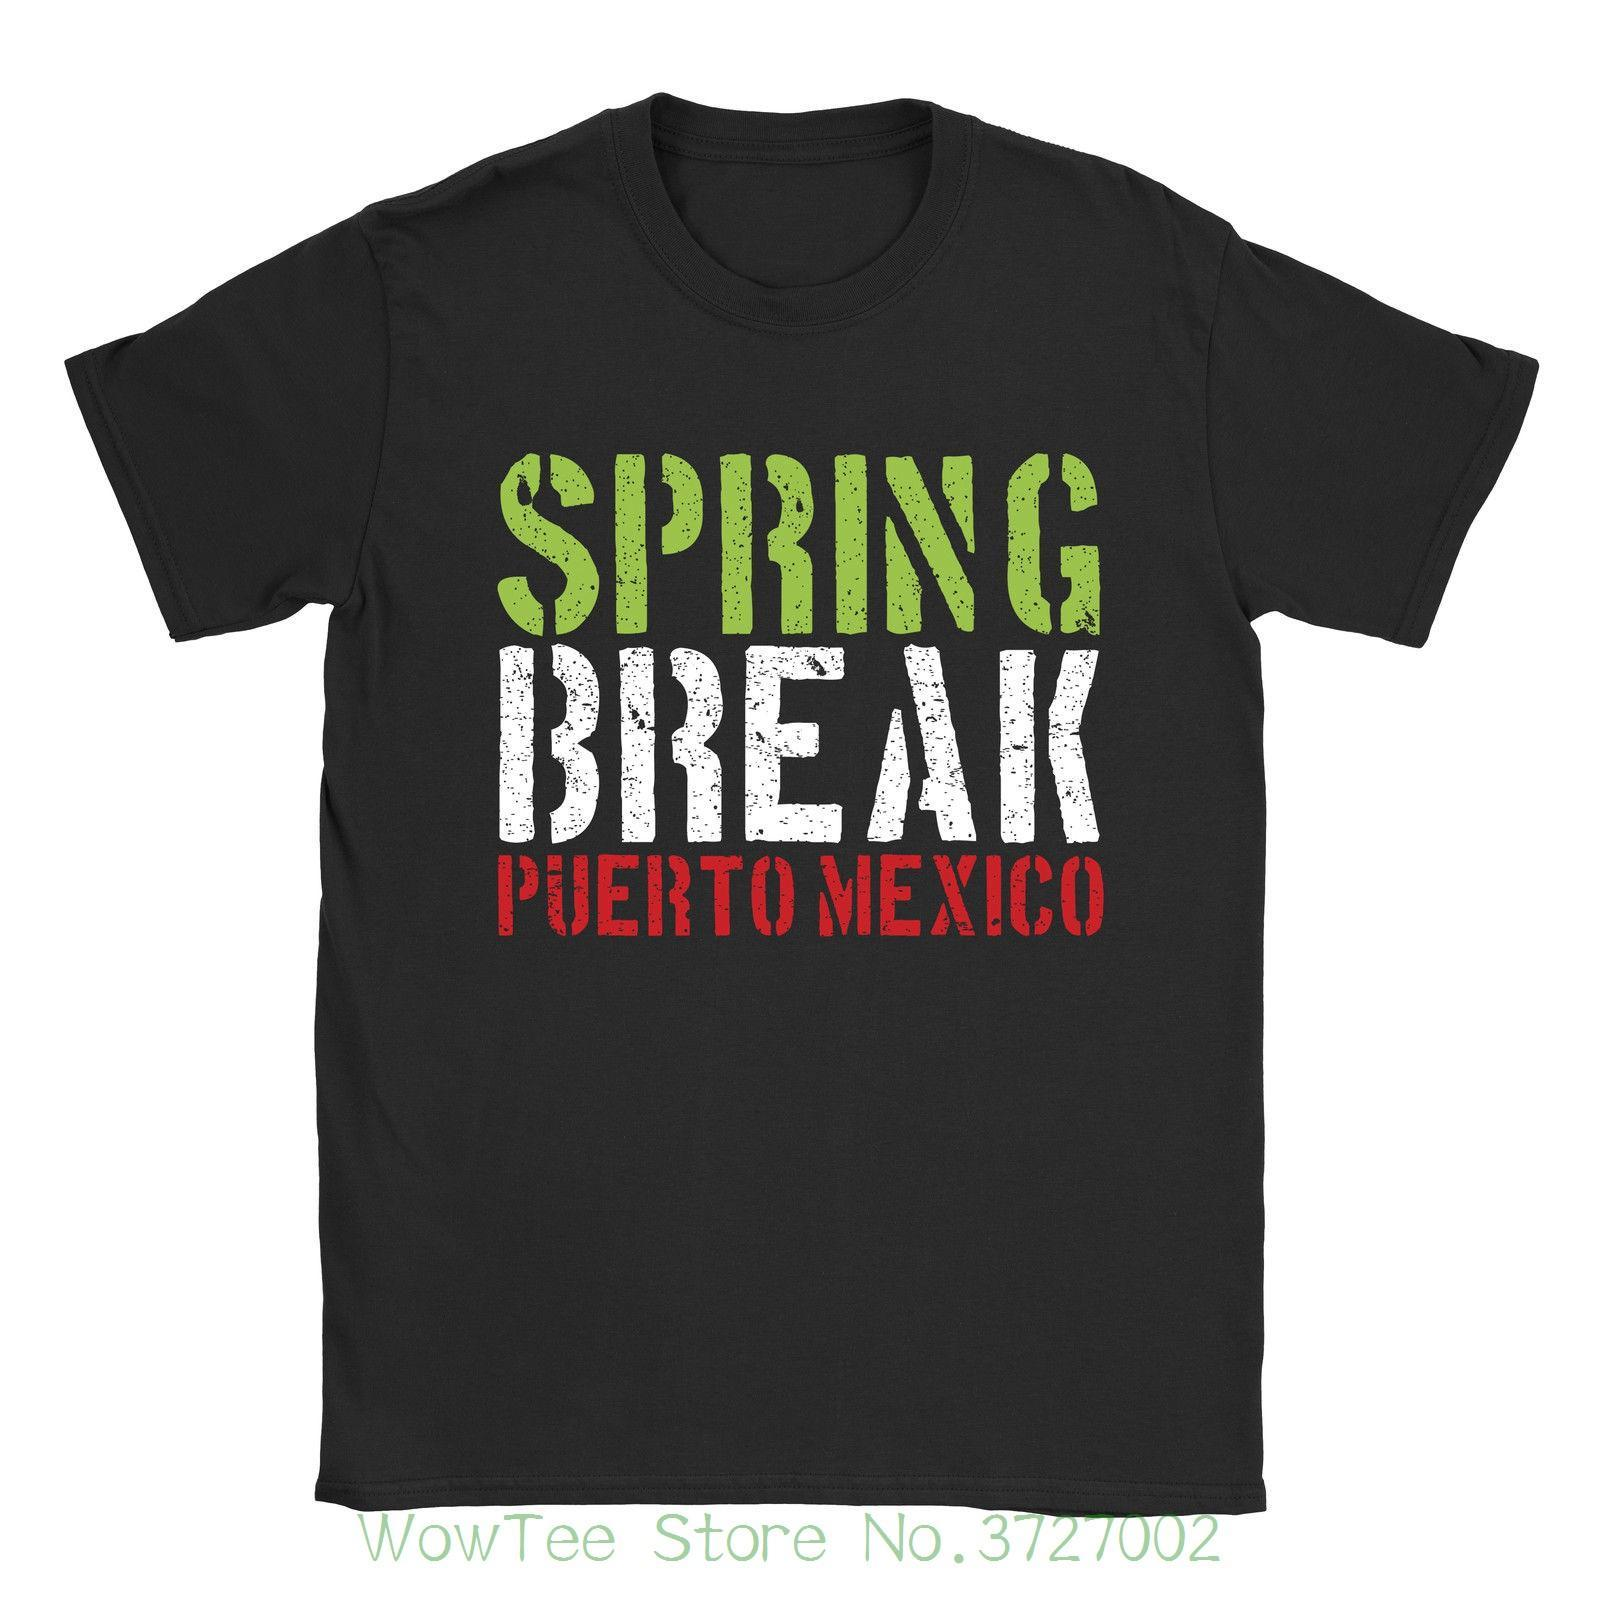 67972045cf Spring Break Mens T Shirt 21 22 Jump Street Funny Birthday Present Gift  Summer Style Hip Hop Men T Shirt Tops Tee Shirts Online Shopping T Shirts  Shop ...